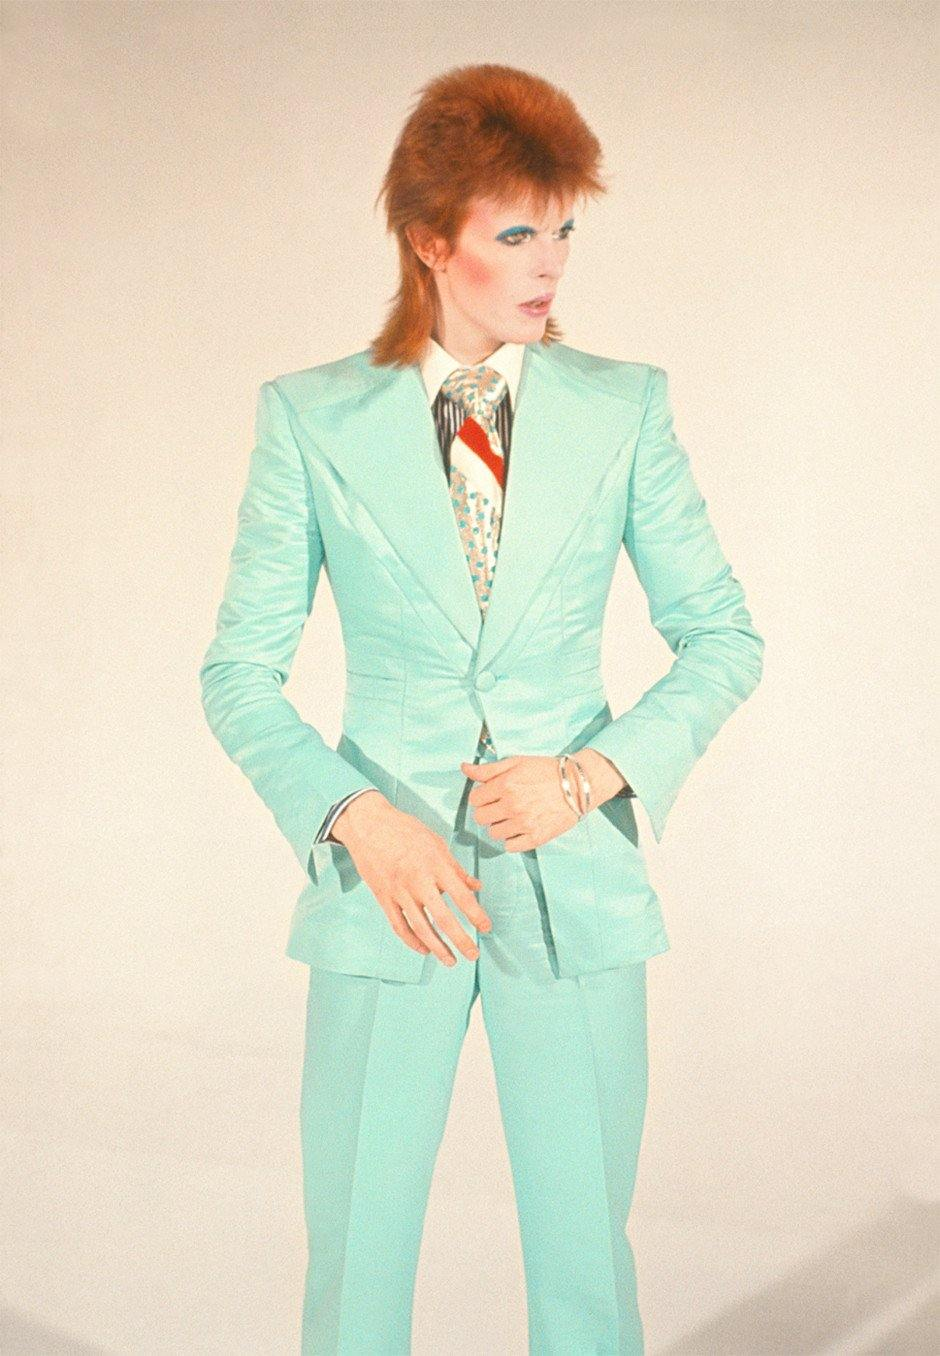 David Bowie, Life On Mars, London, 1973, Mick Rock, photography, art gallery, bowie, fine art, home decor, gift shop, Los Angeles, La Maison Rebelle, signed, limited edition